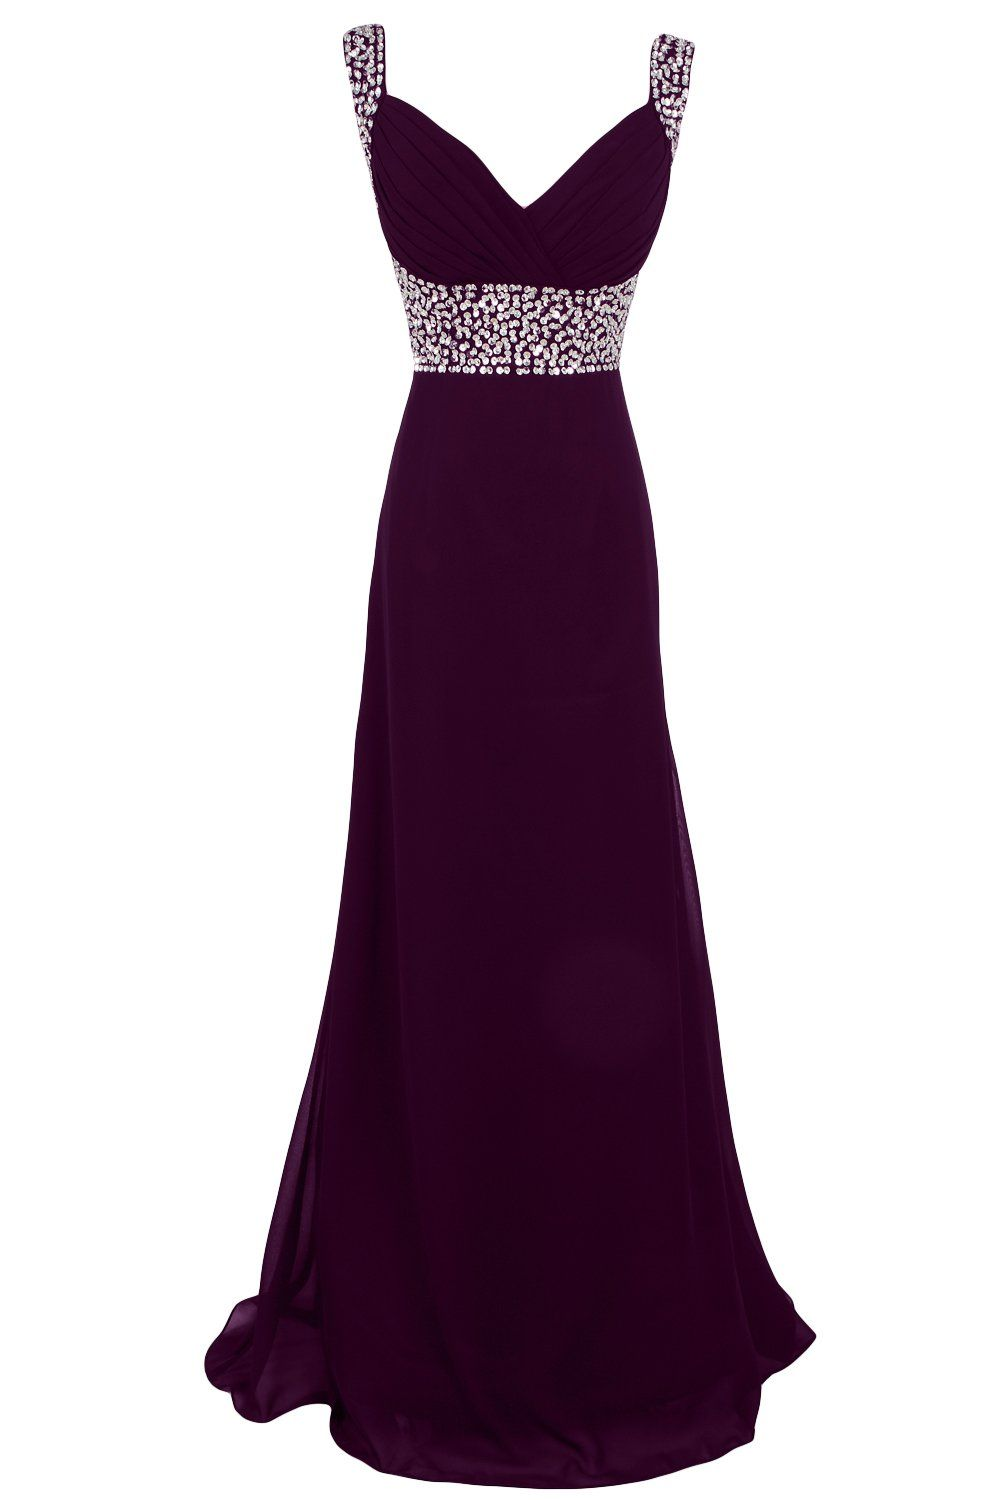 Sunvary sequin chiffon bridesmaid dresses evening prom gowns long